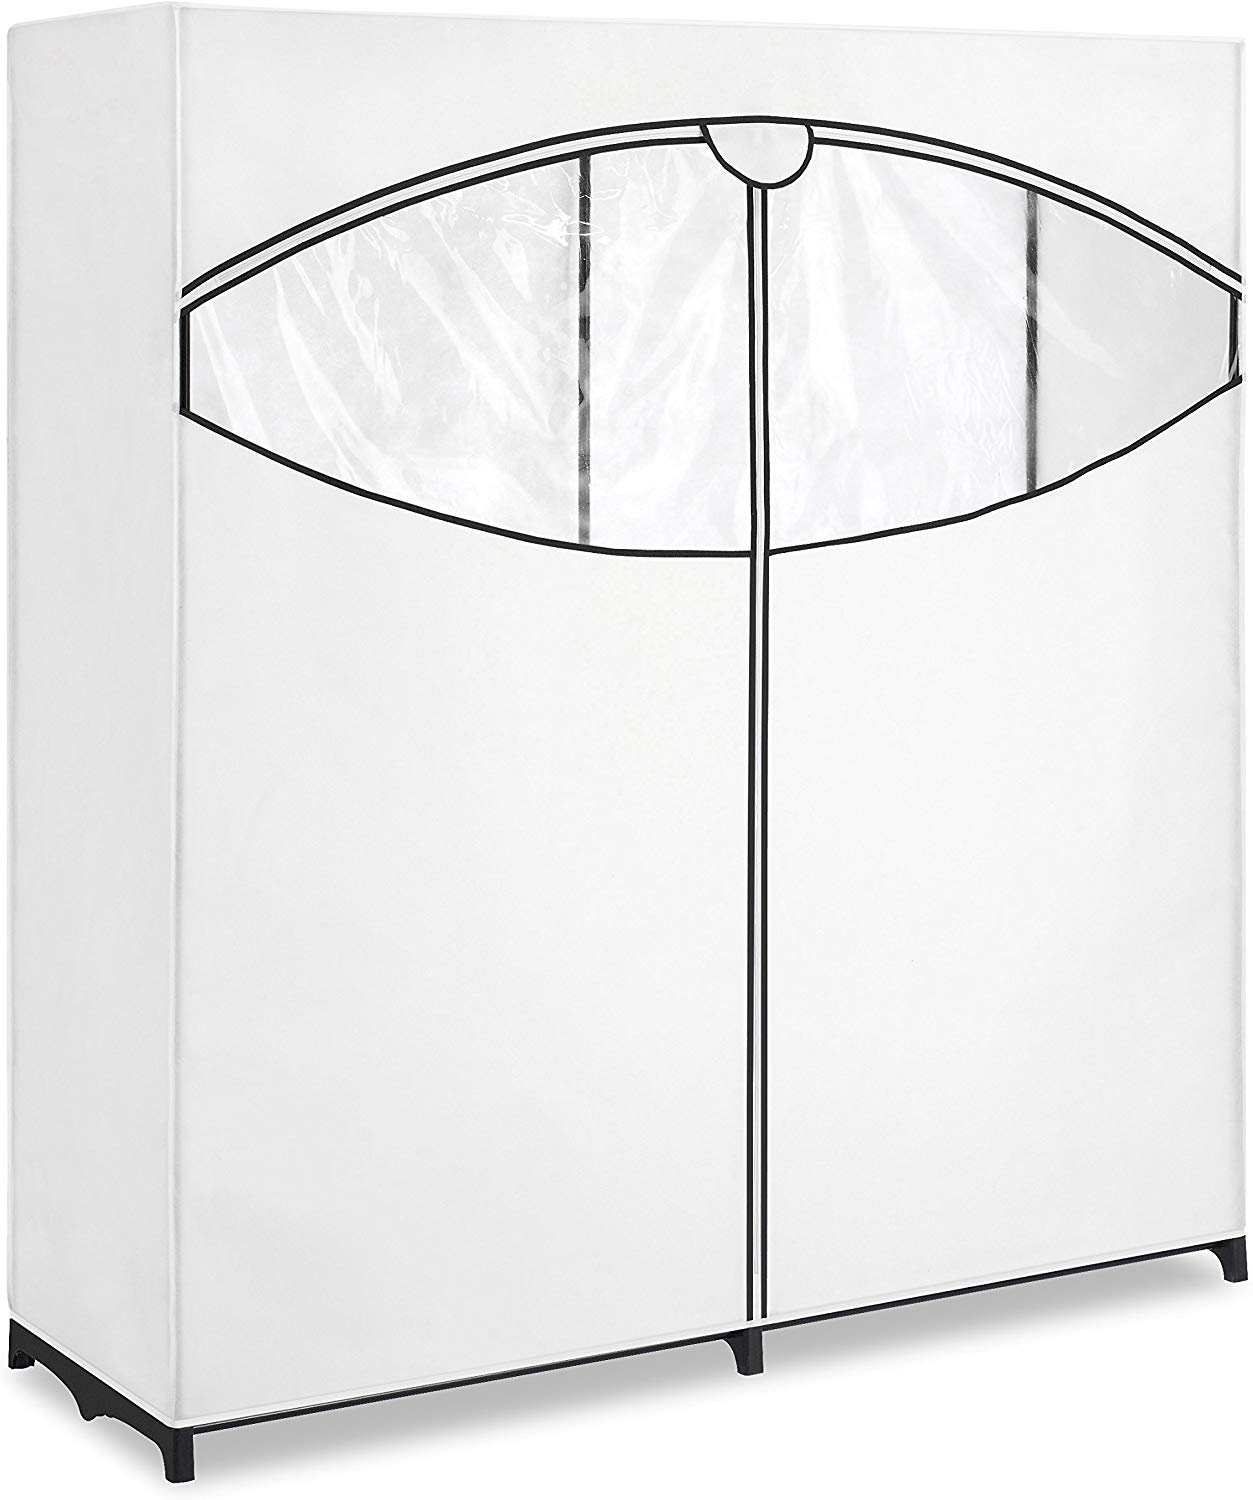 Hot portable closet